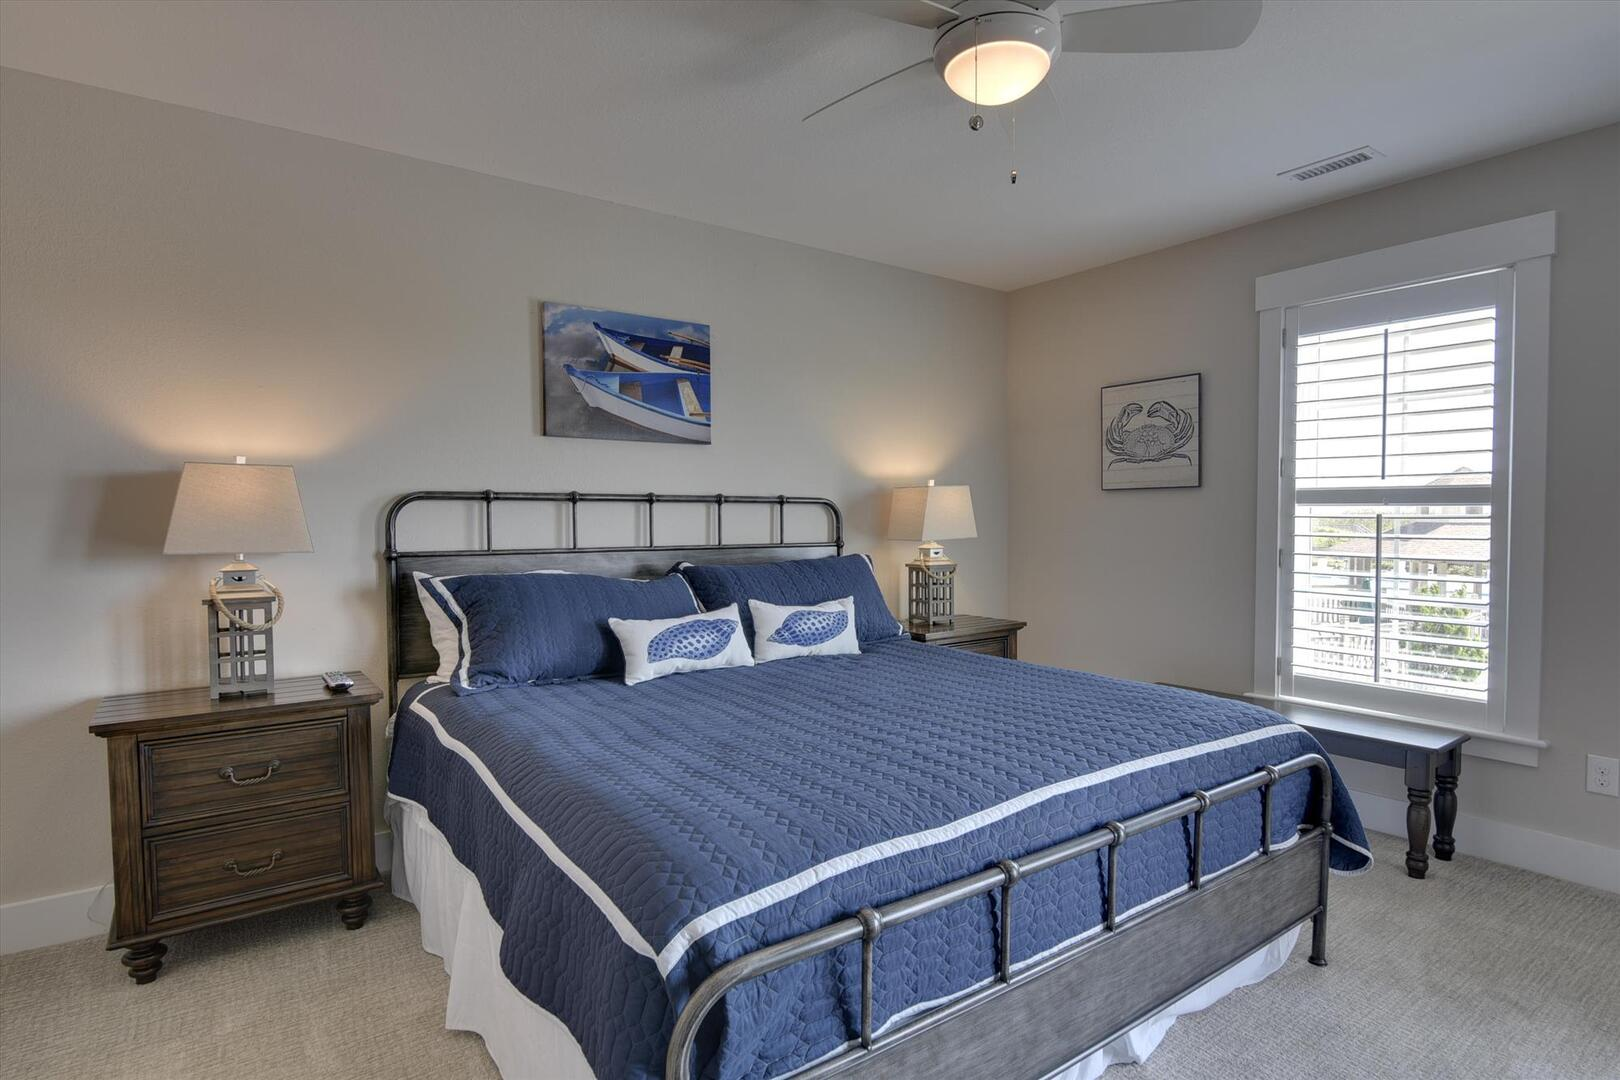 Middle/Entry Level,Bedroom,